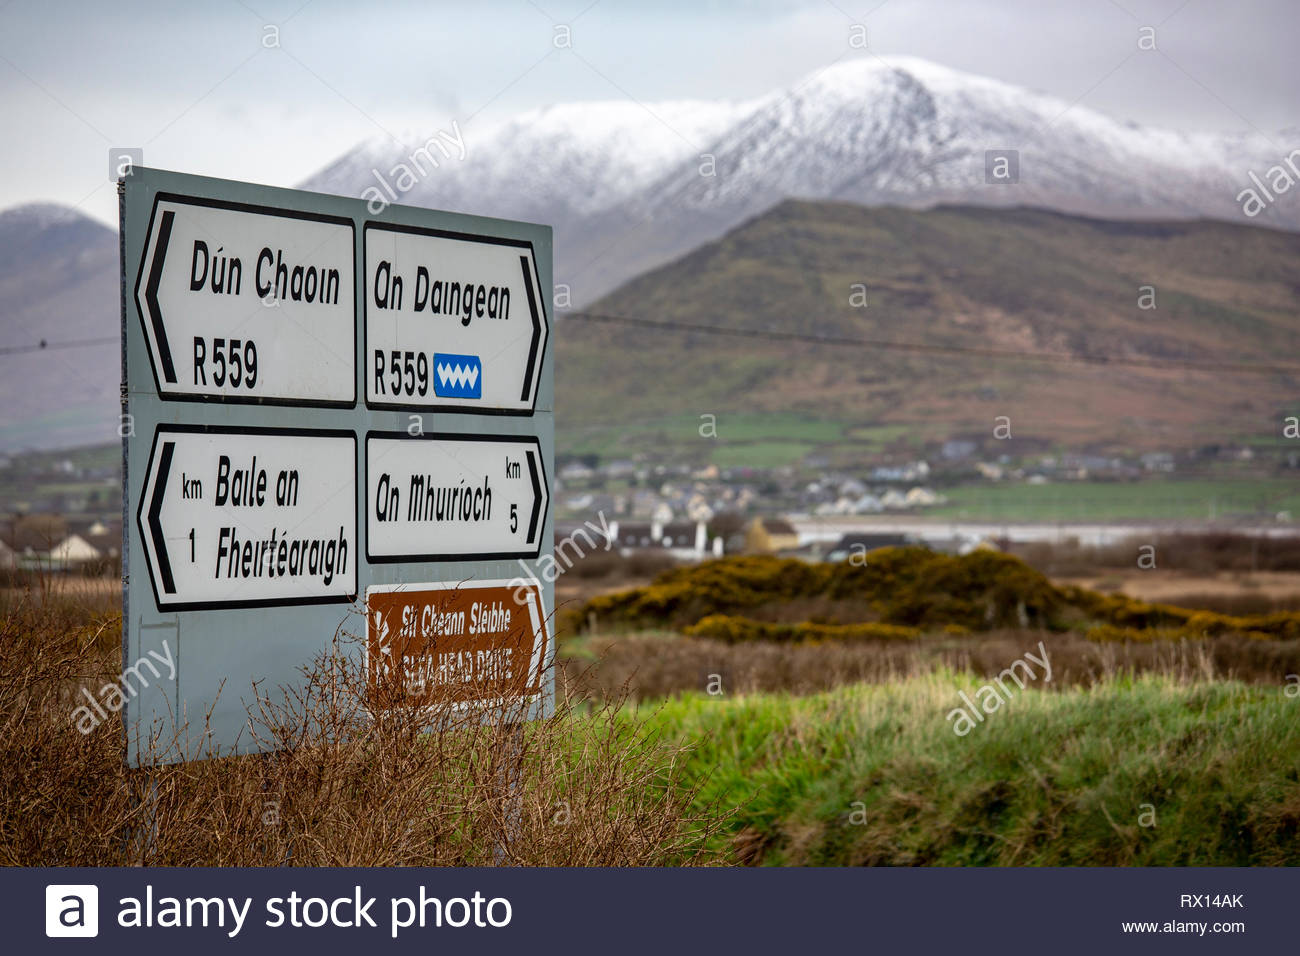 Snow on the mountains in the Irish-speaking area of West Kerry as a sign shows the way to the villages in the area. - Stock Image